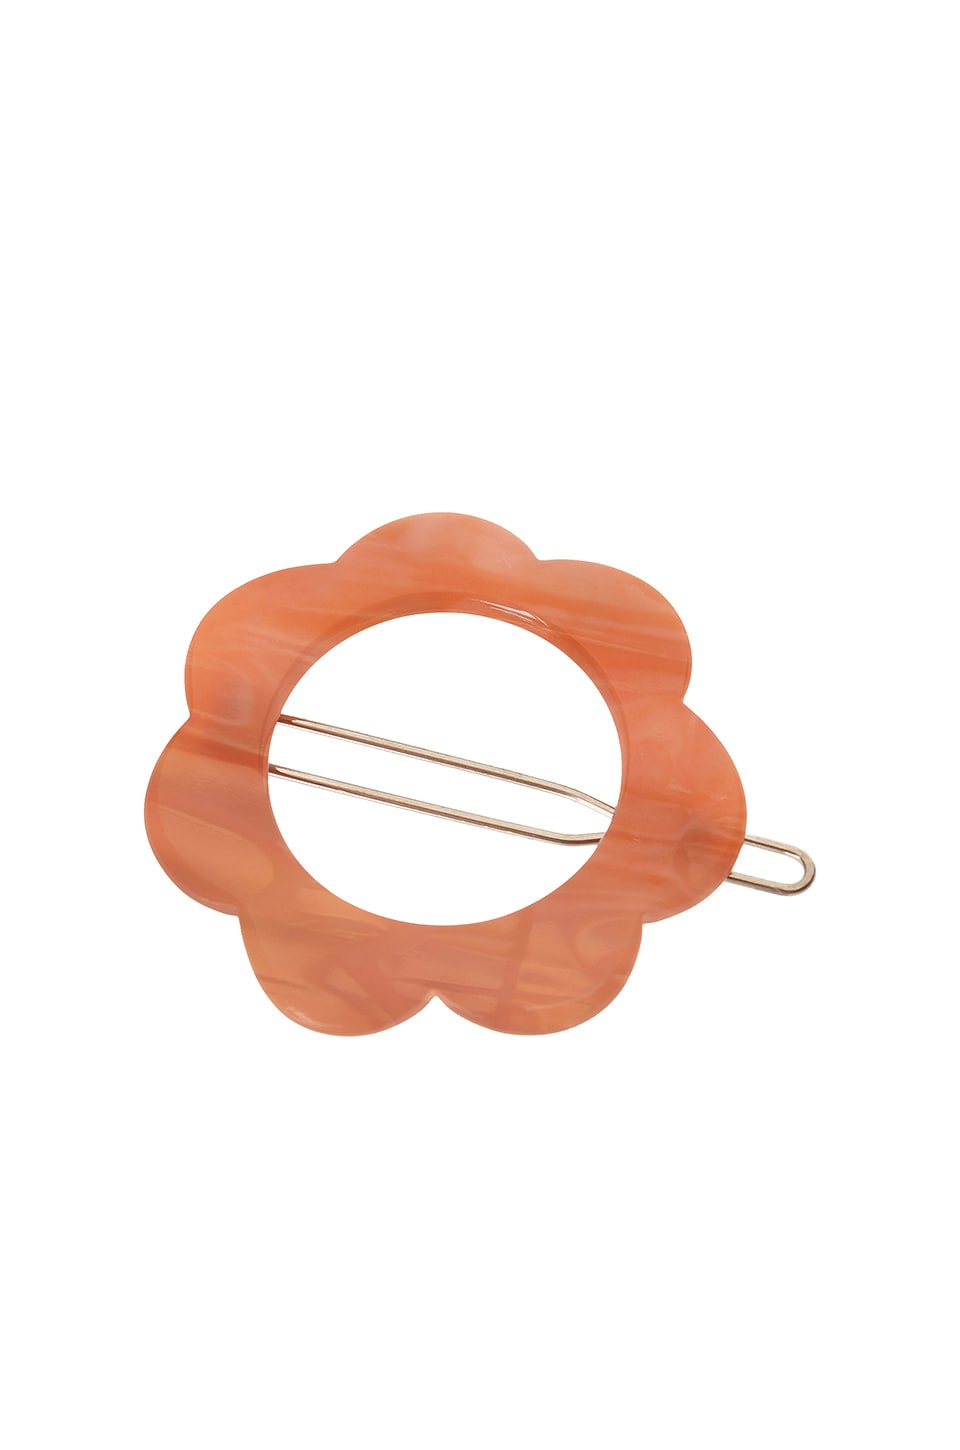 France Luxe Posh Flower Tige Boule Barrette in Nacro Coral